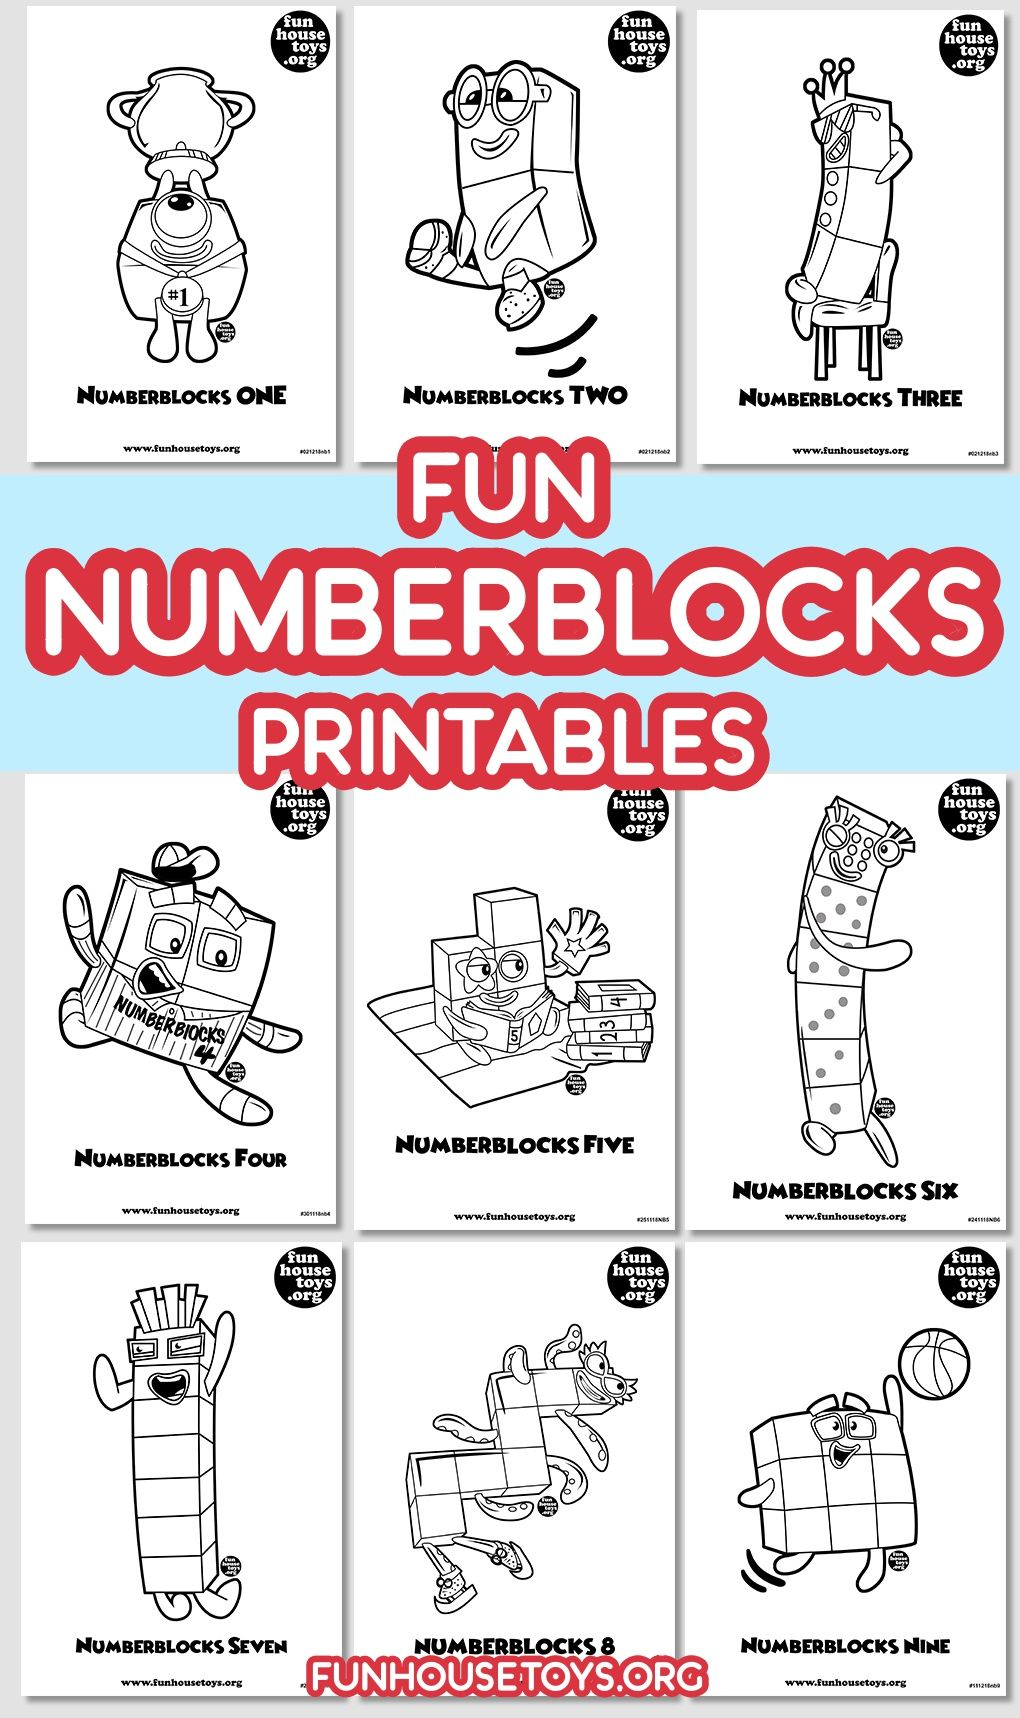 Fun Numberblocks Coloring Printables For Kids Fun Printables For Kids Coloring Pages For Kids Coloring Pages